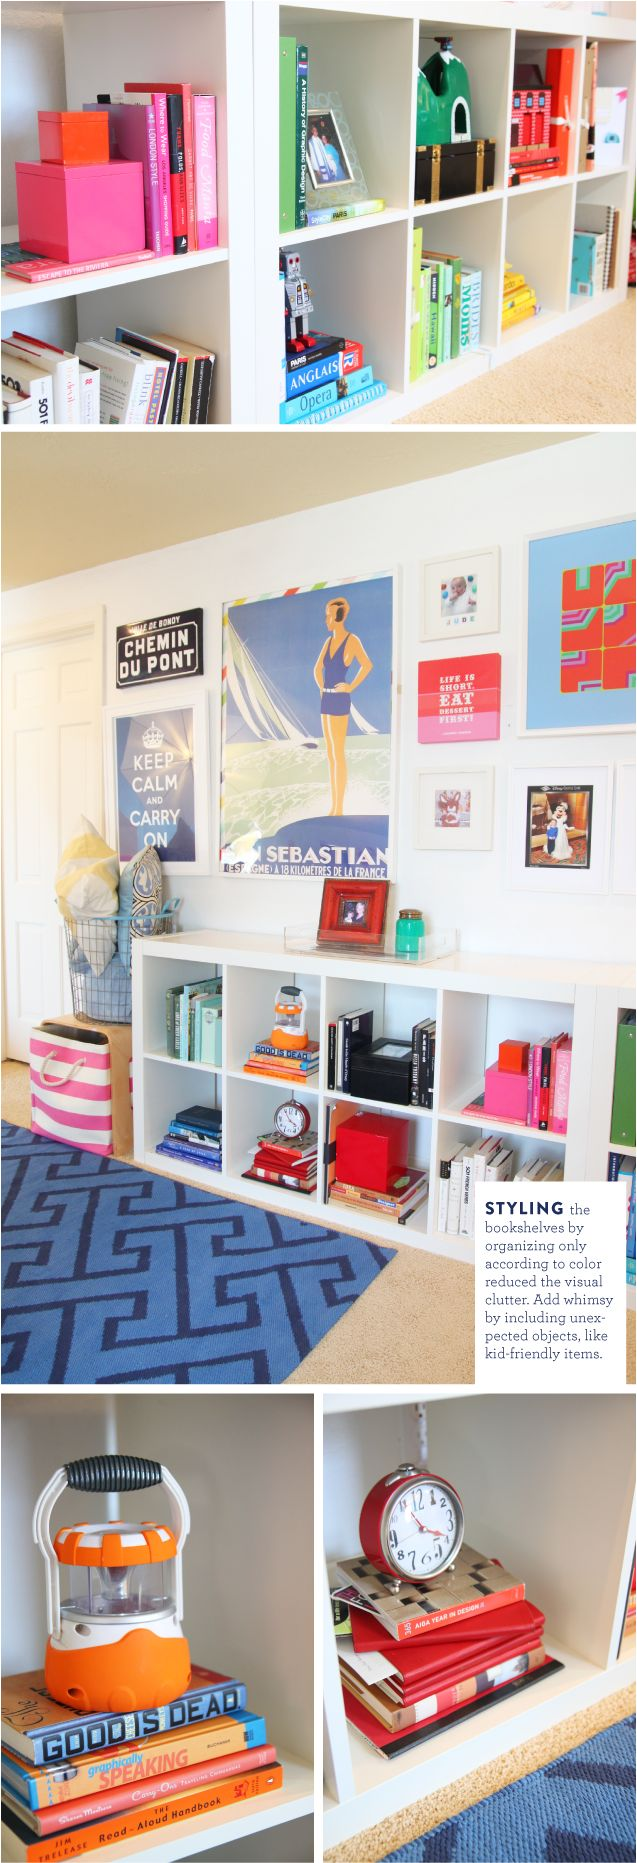 Styling Bookshelves with Color by pencilshavingsstudio: Organizing according to color reduces the visual clutter. Add whimsy by including unexpected objects, like kid friendly items.  #Kids #Bookshelves #Design